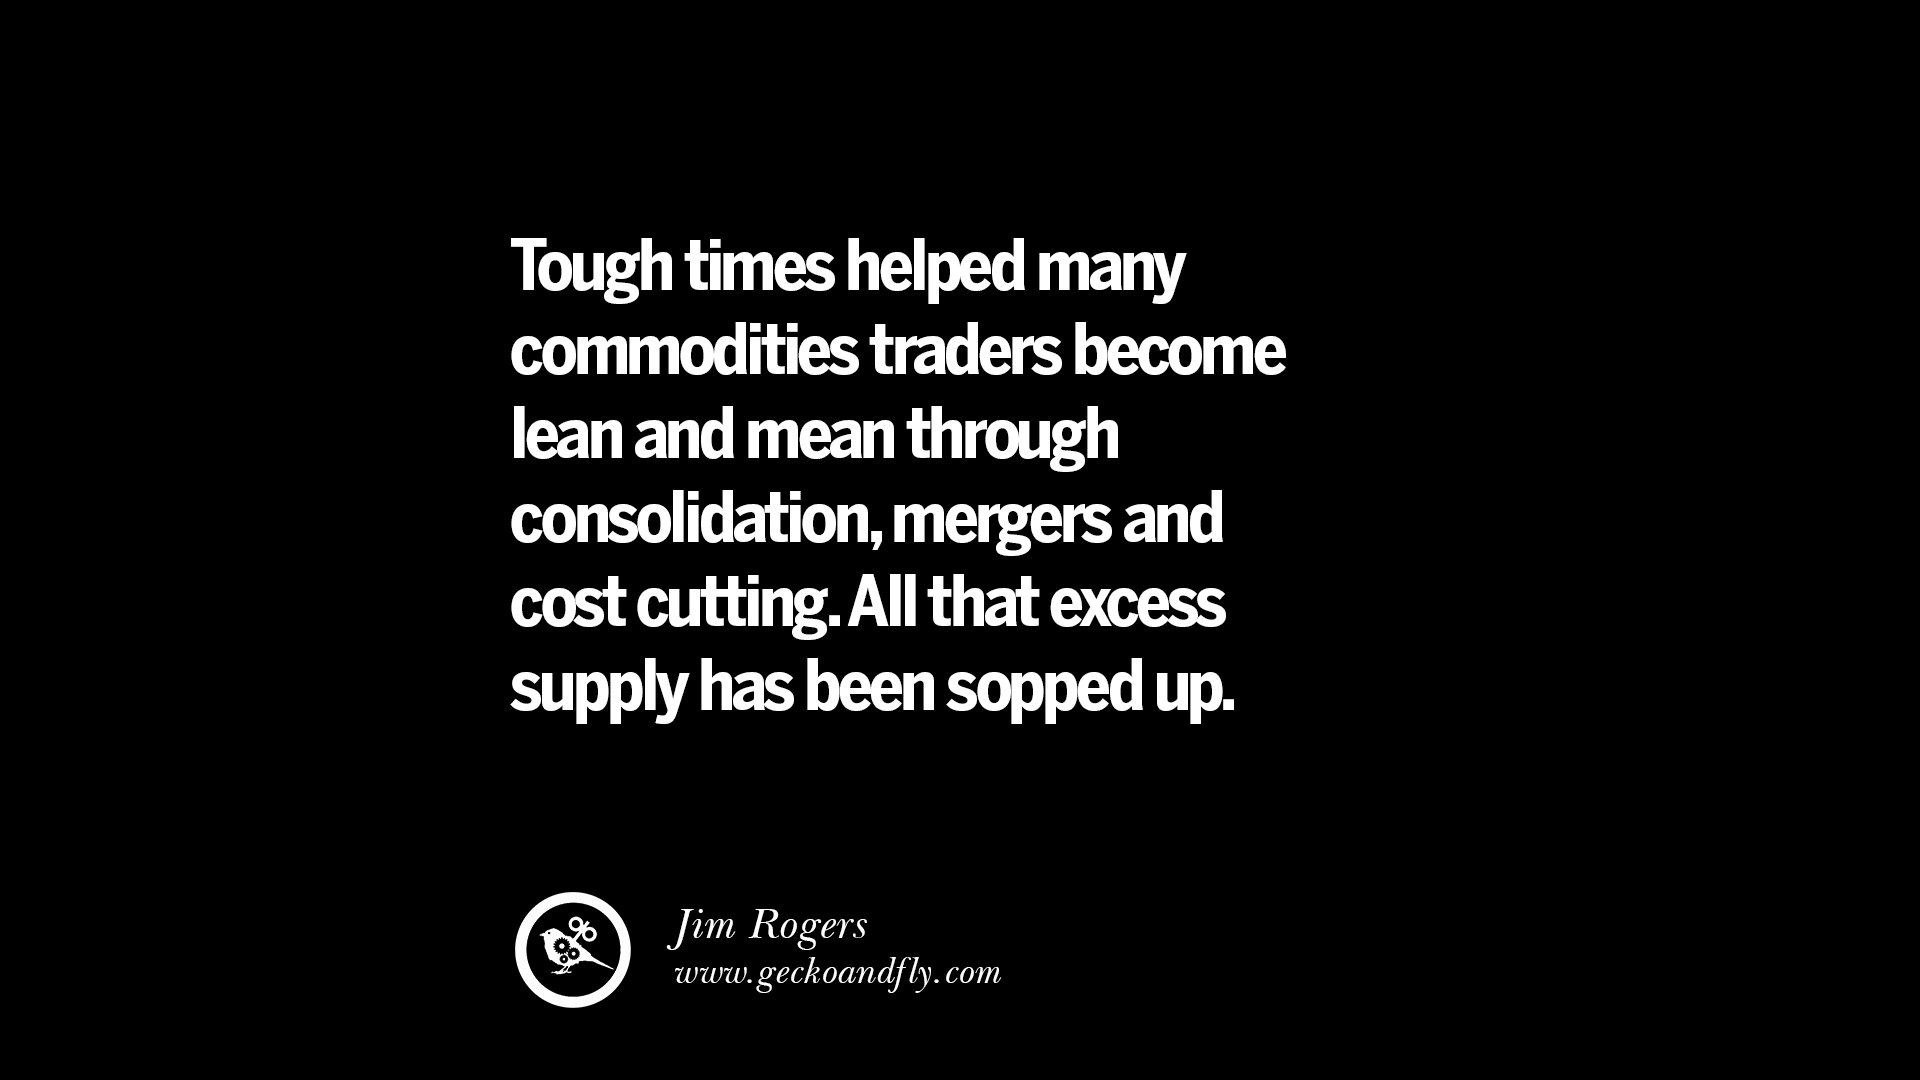 Commodity Quotes Commodities Trading Meaning Dubai  Stock Market Training Qatar